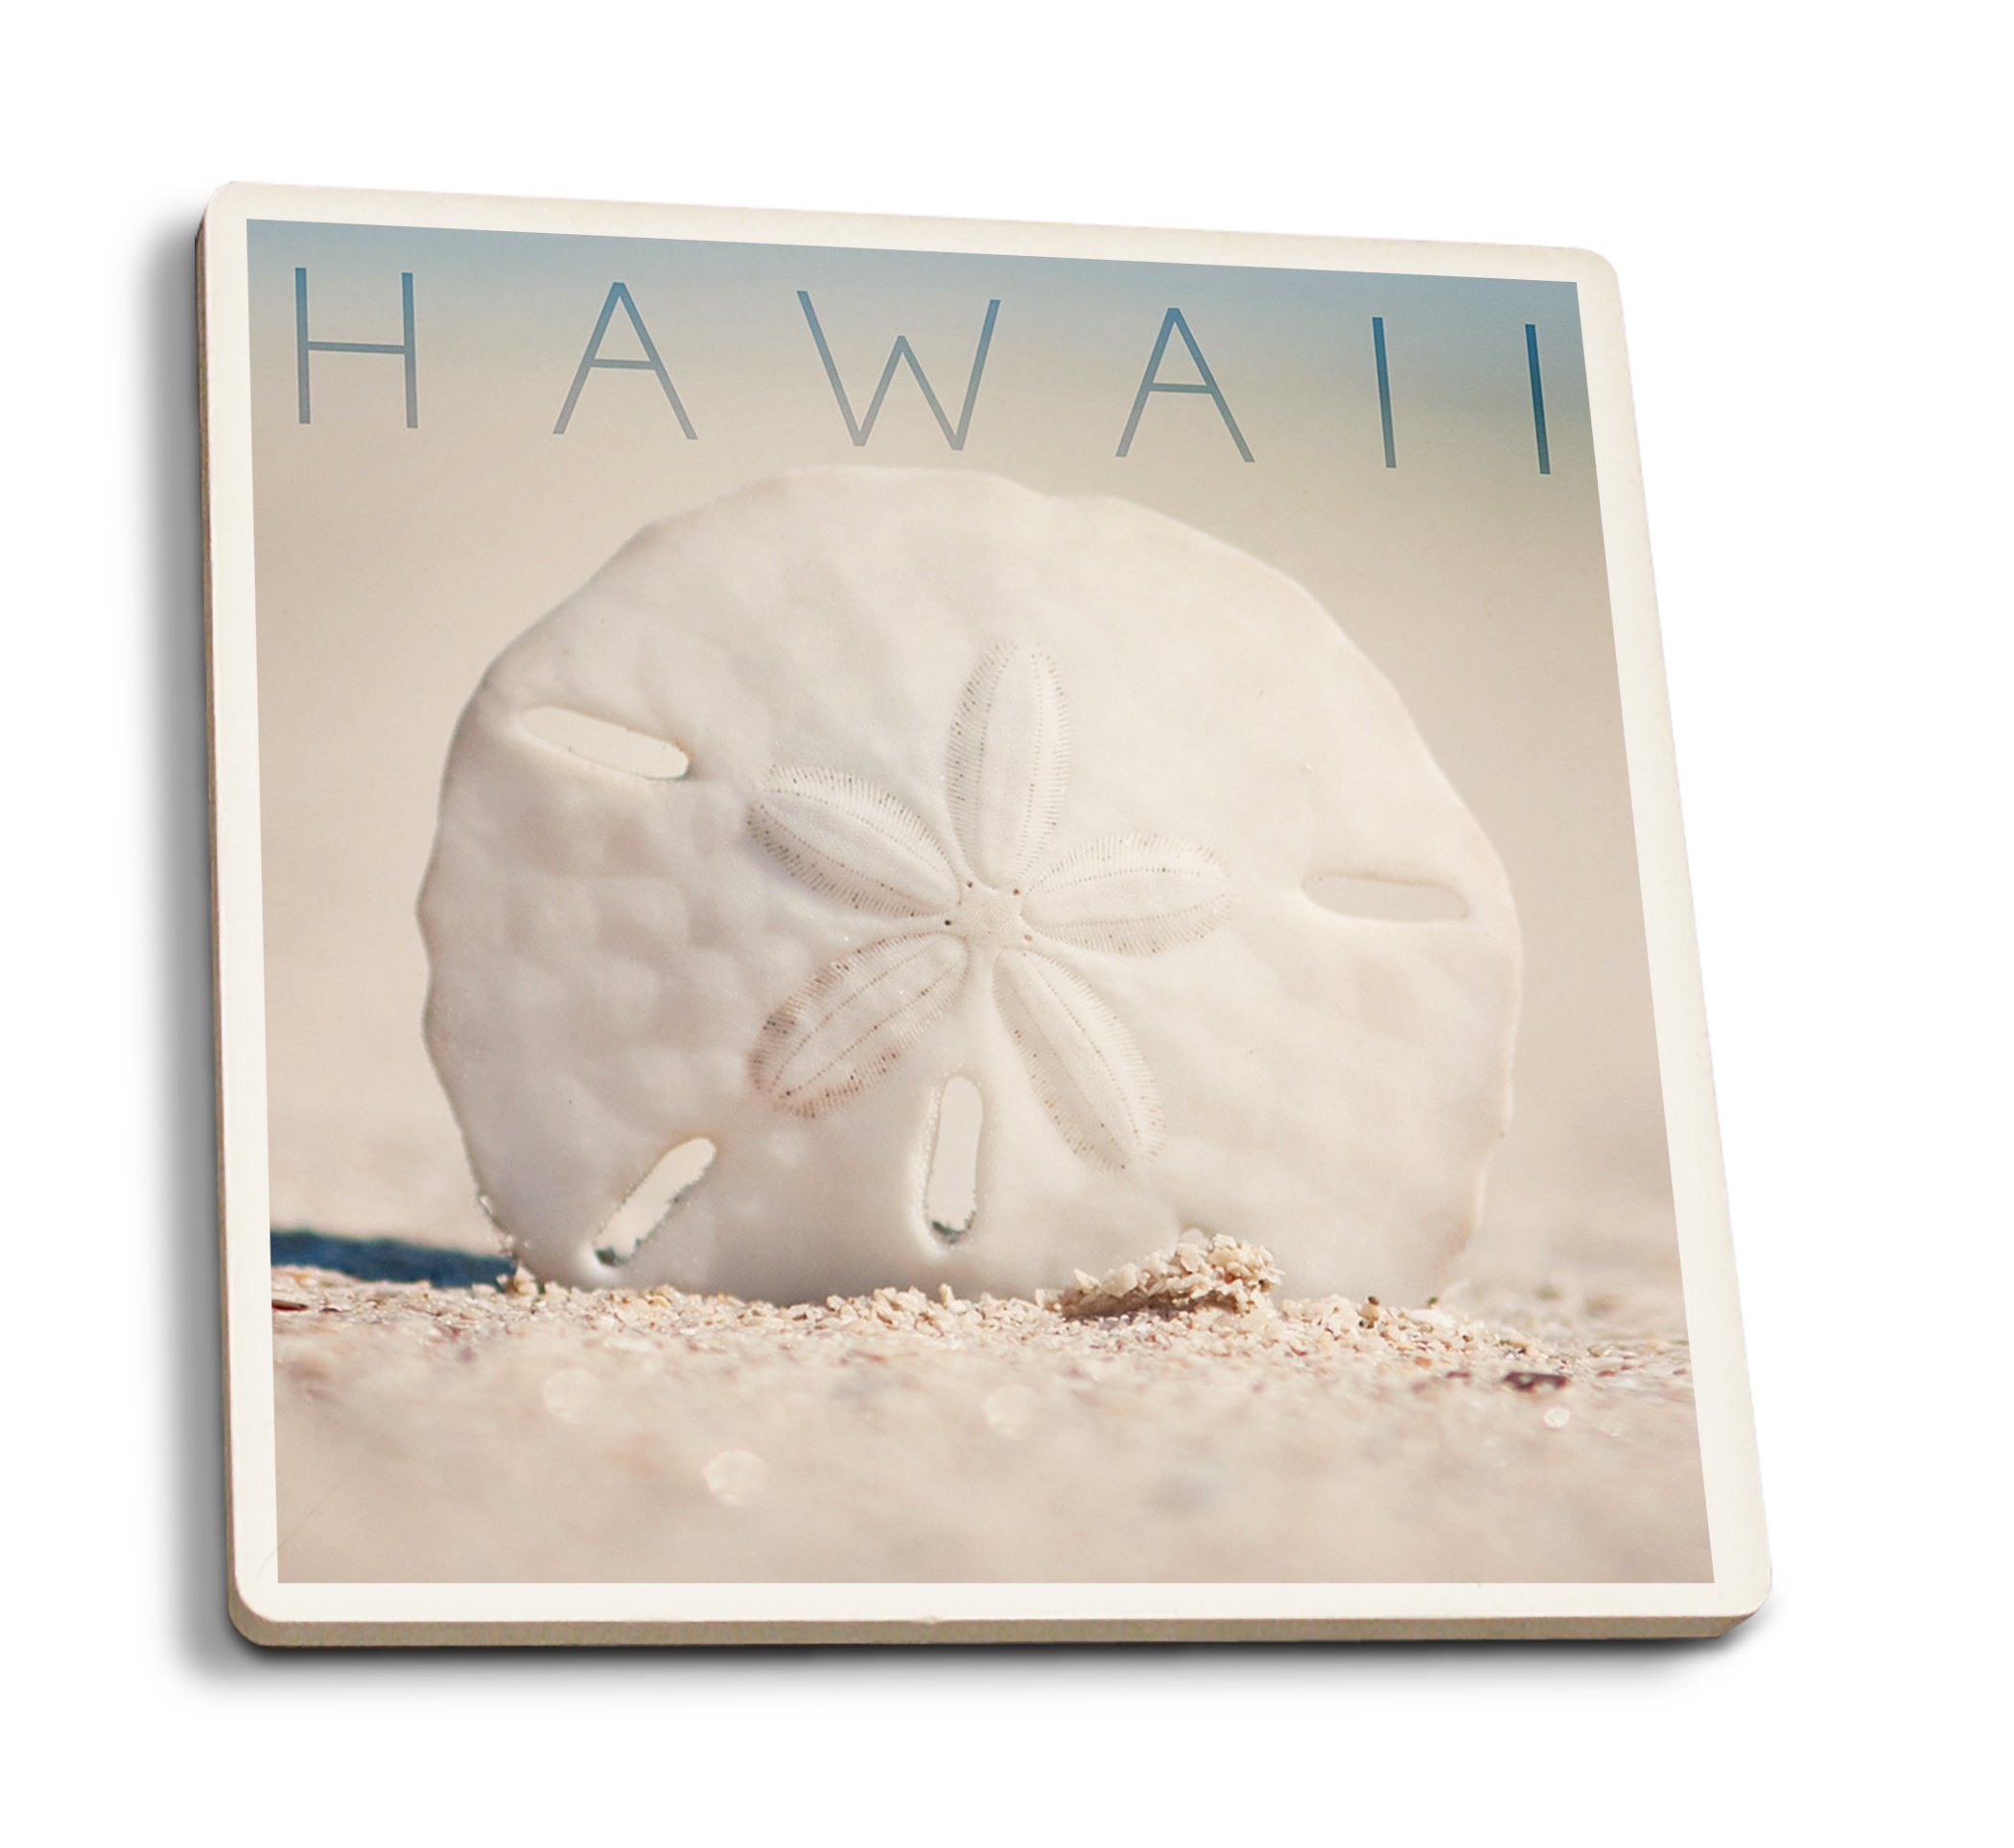 Lantern Press Hawaii - Sand Dollar on Beach (Set of 4 Ceramic Coasters - Cork-Backed, Absorbent)